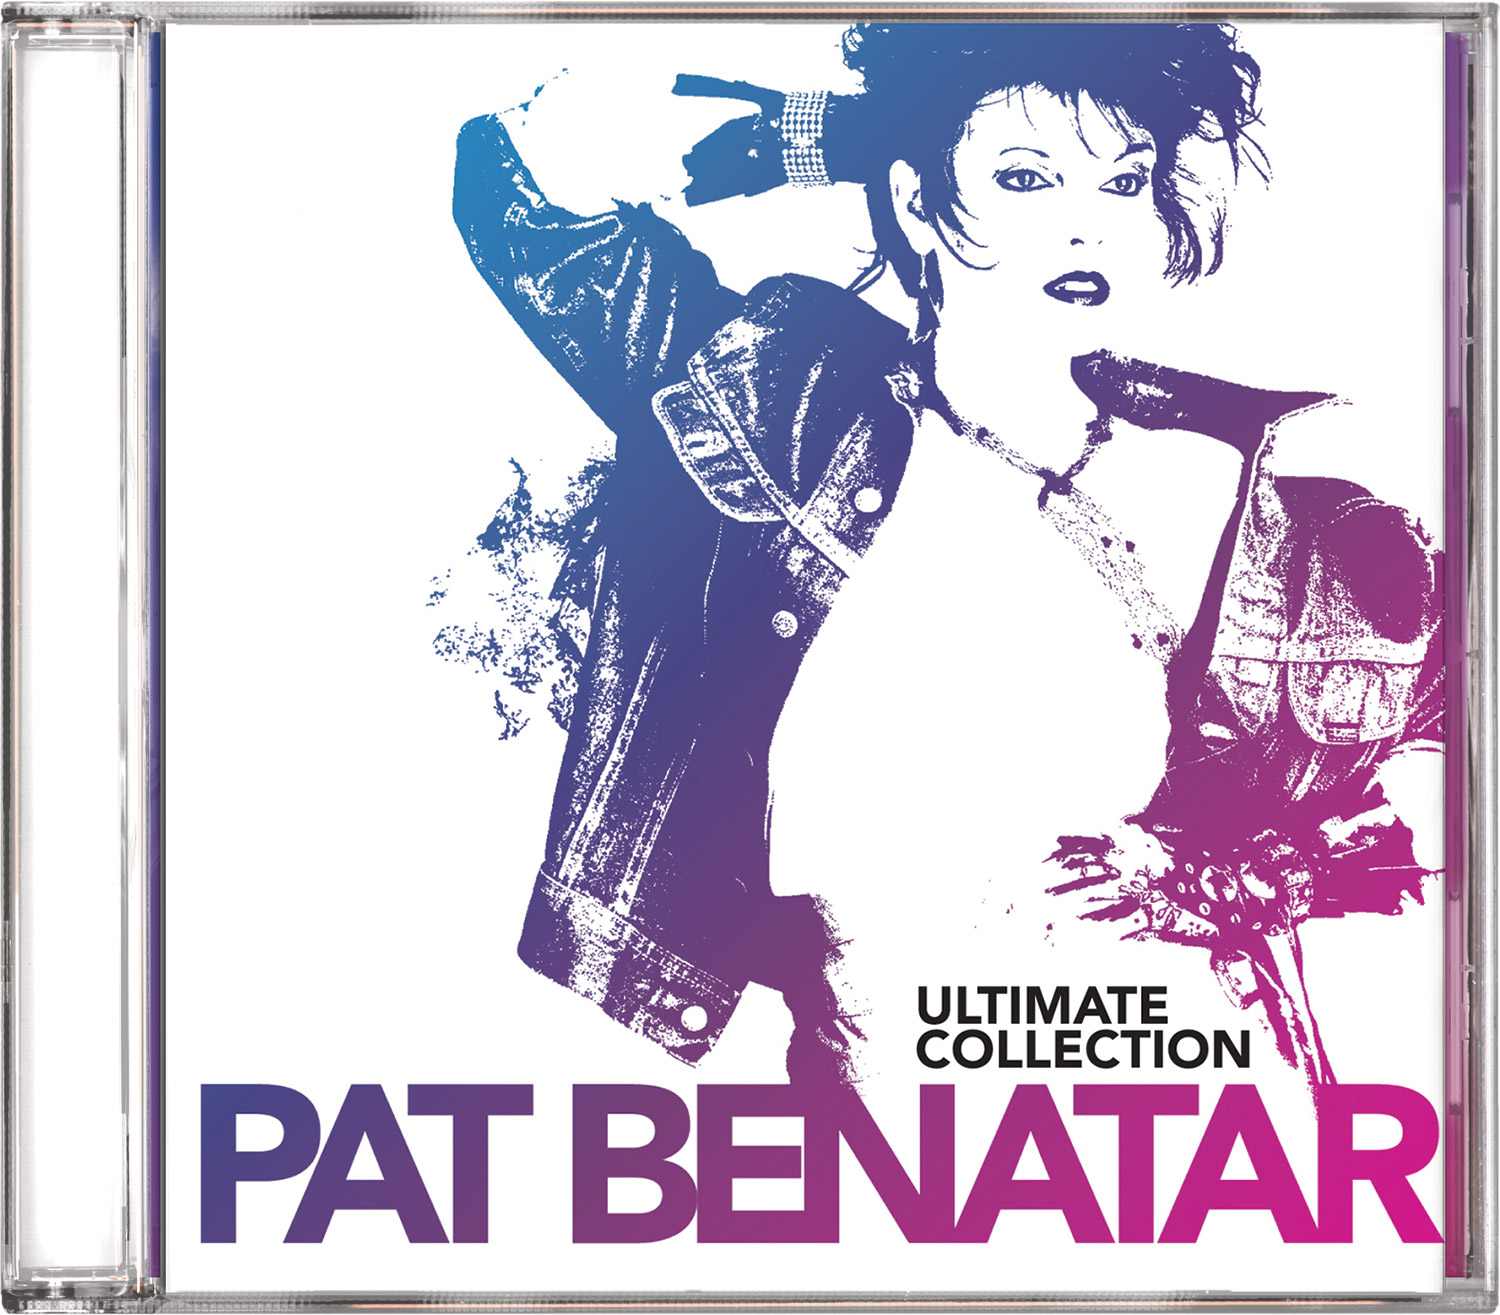 Pat Benatar Ultimate Collection